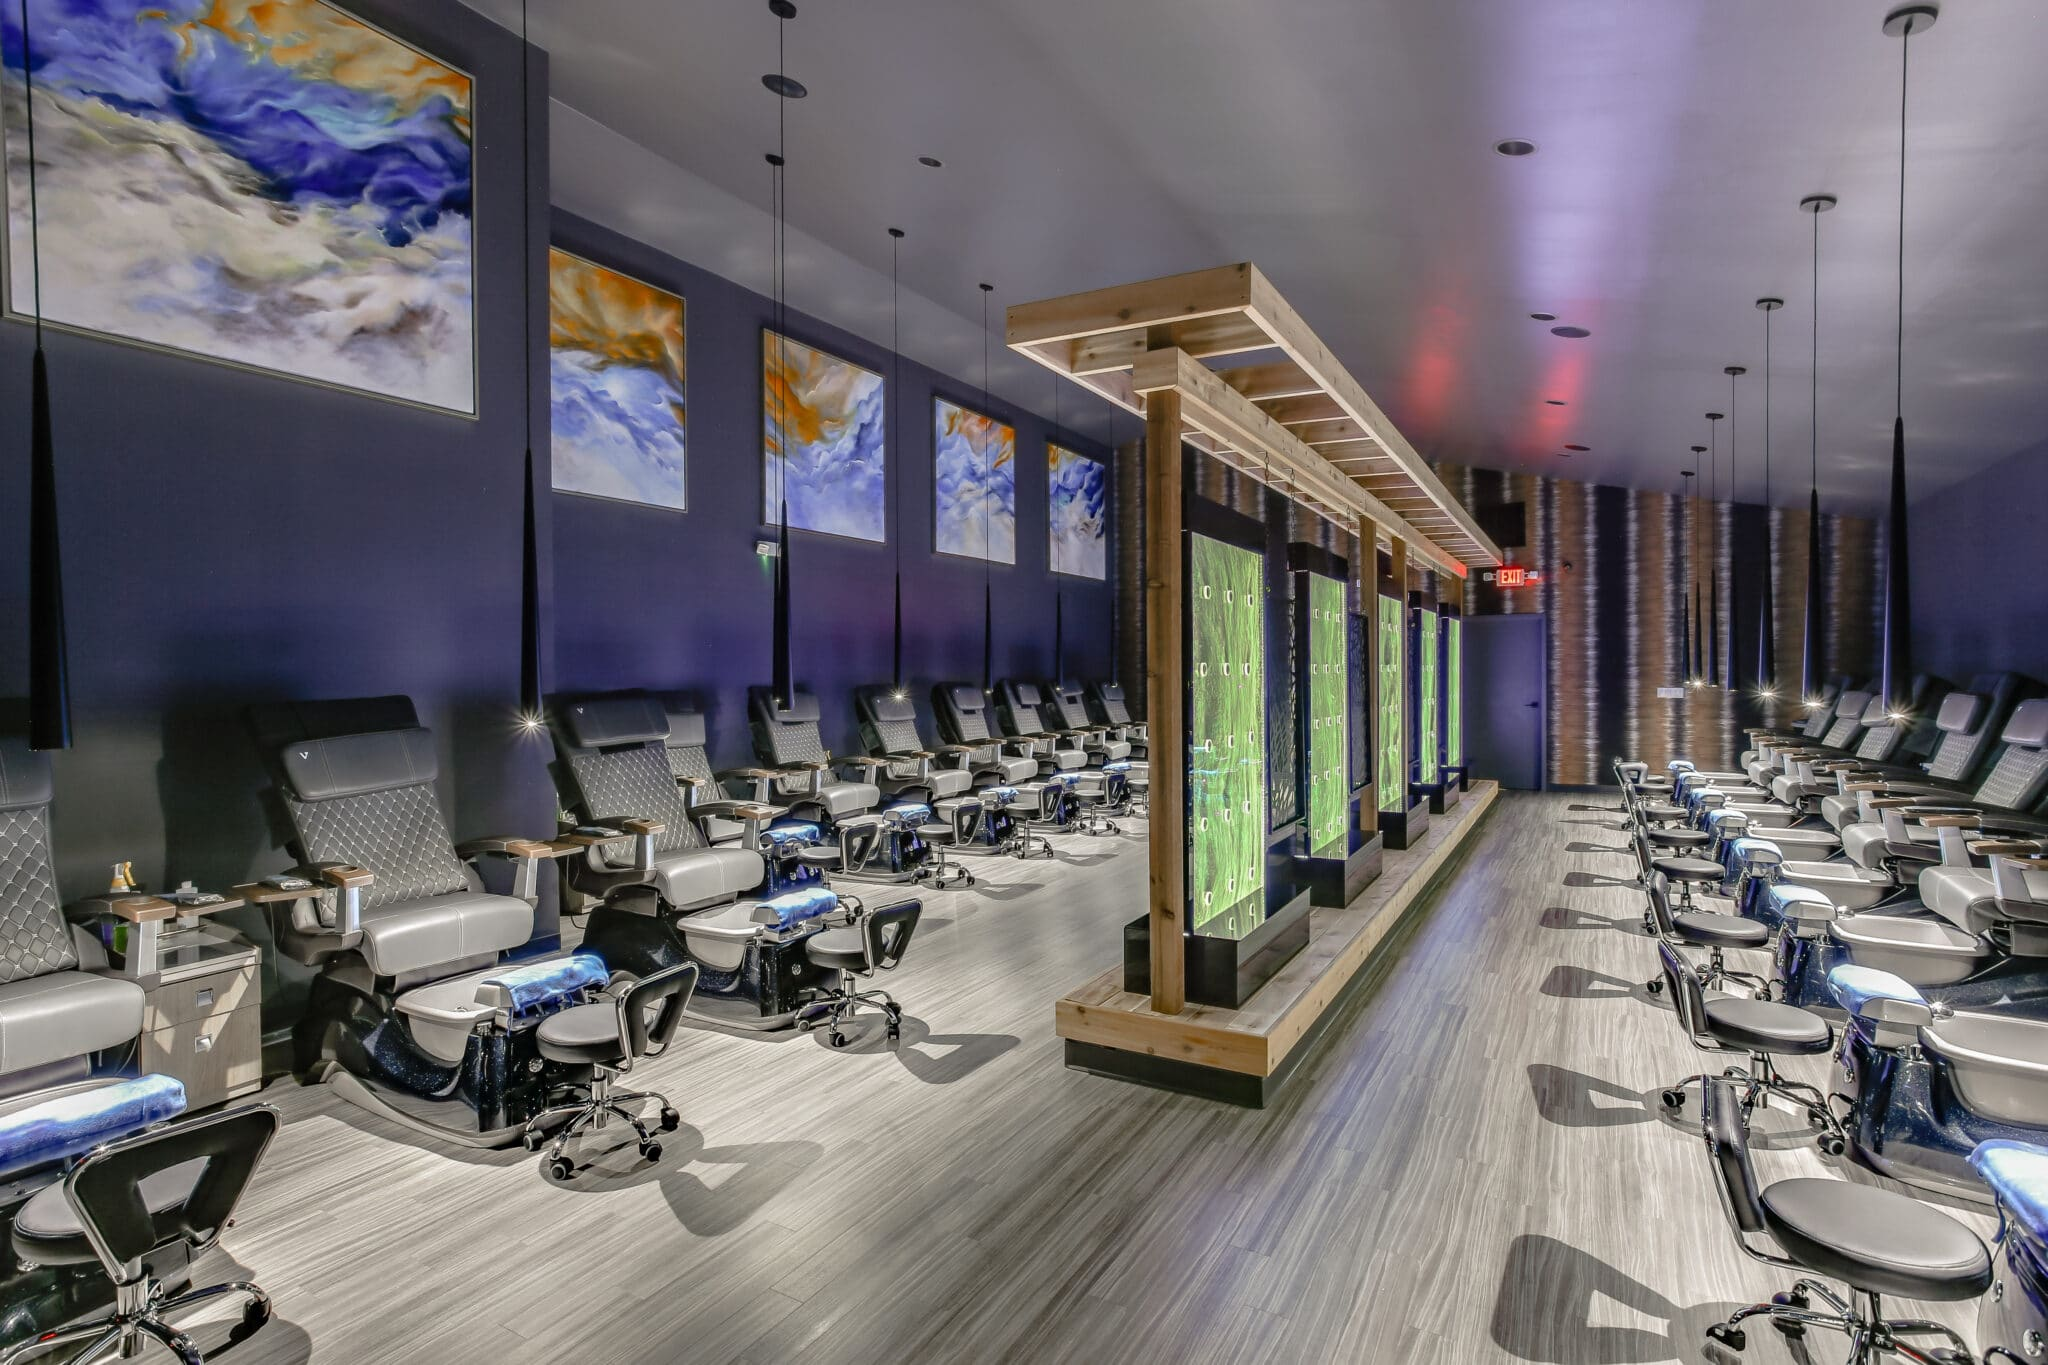 Commercial Remodel in Wisconsin, CMA, remodel services